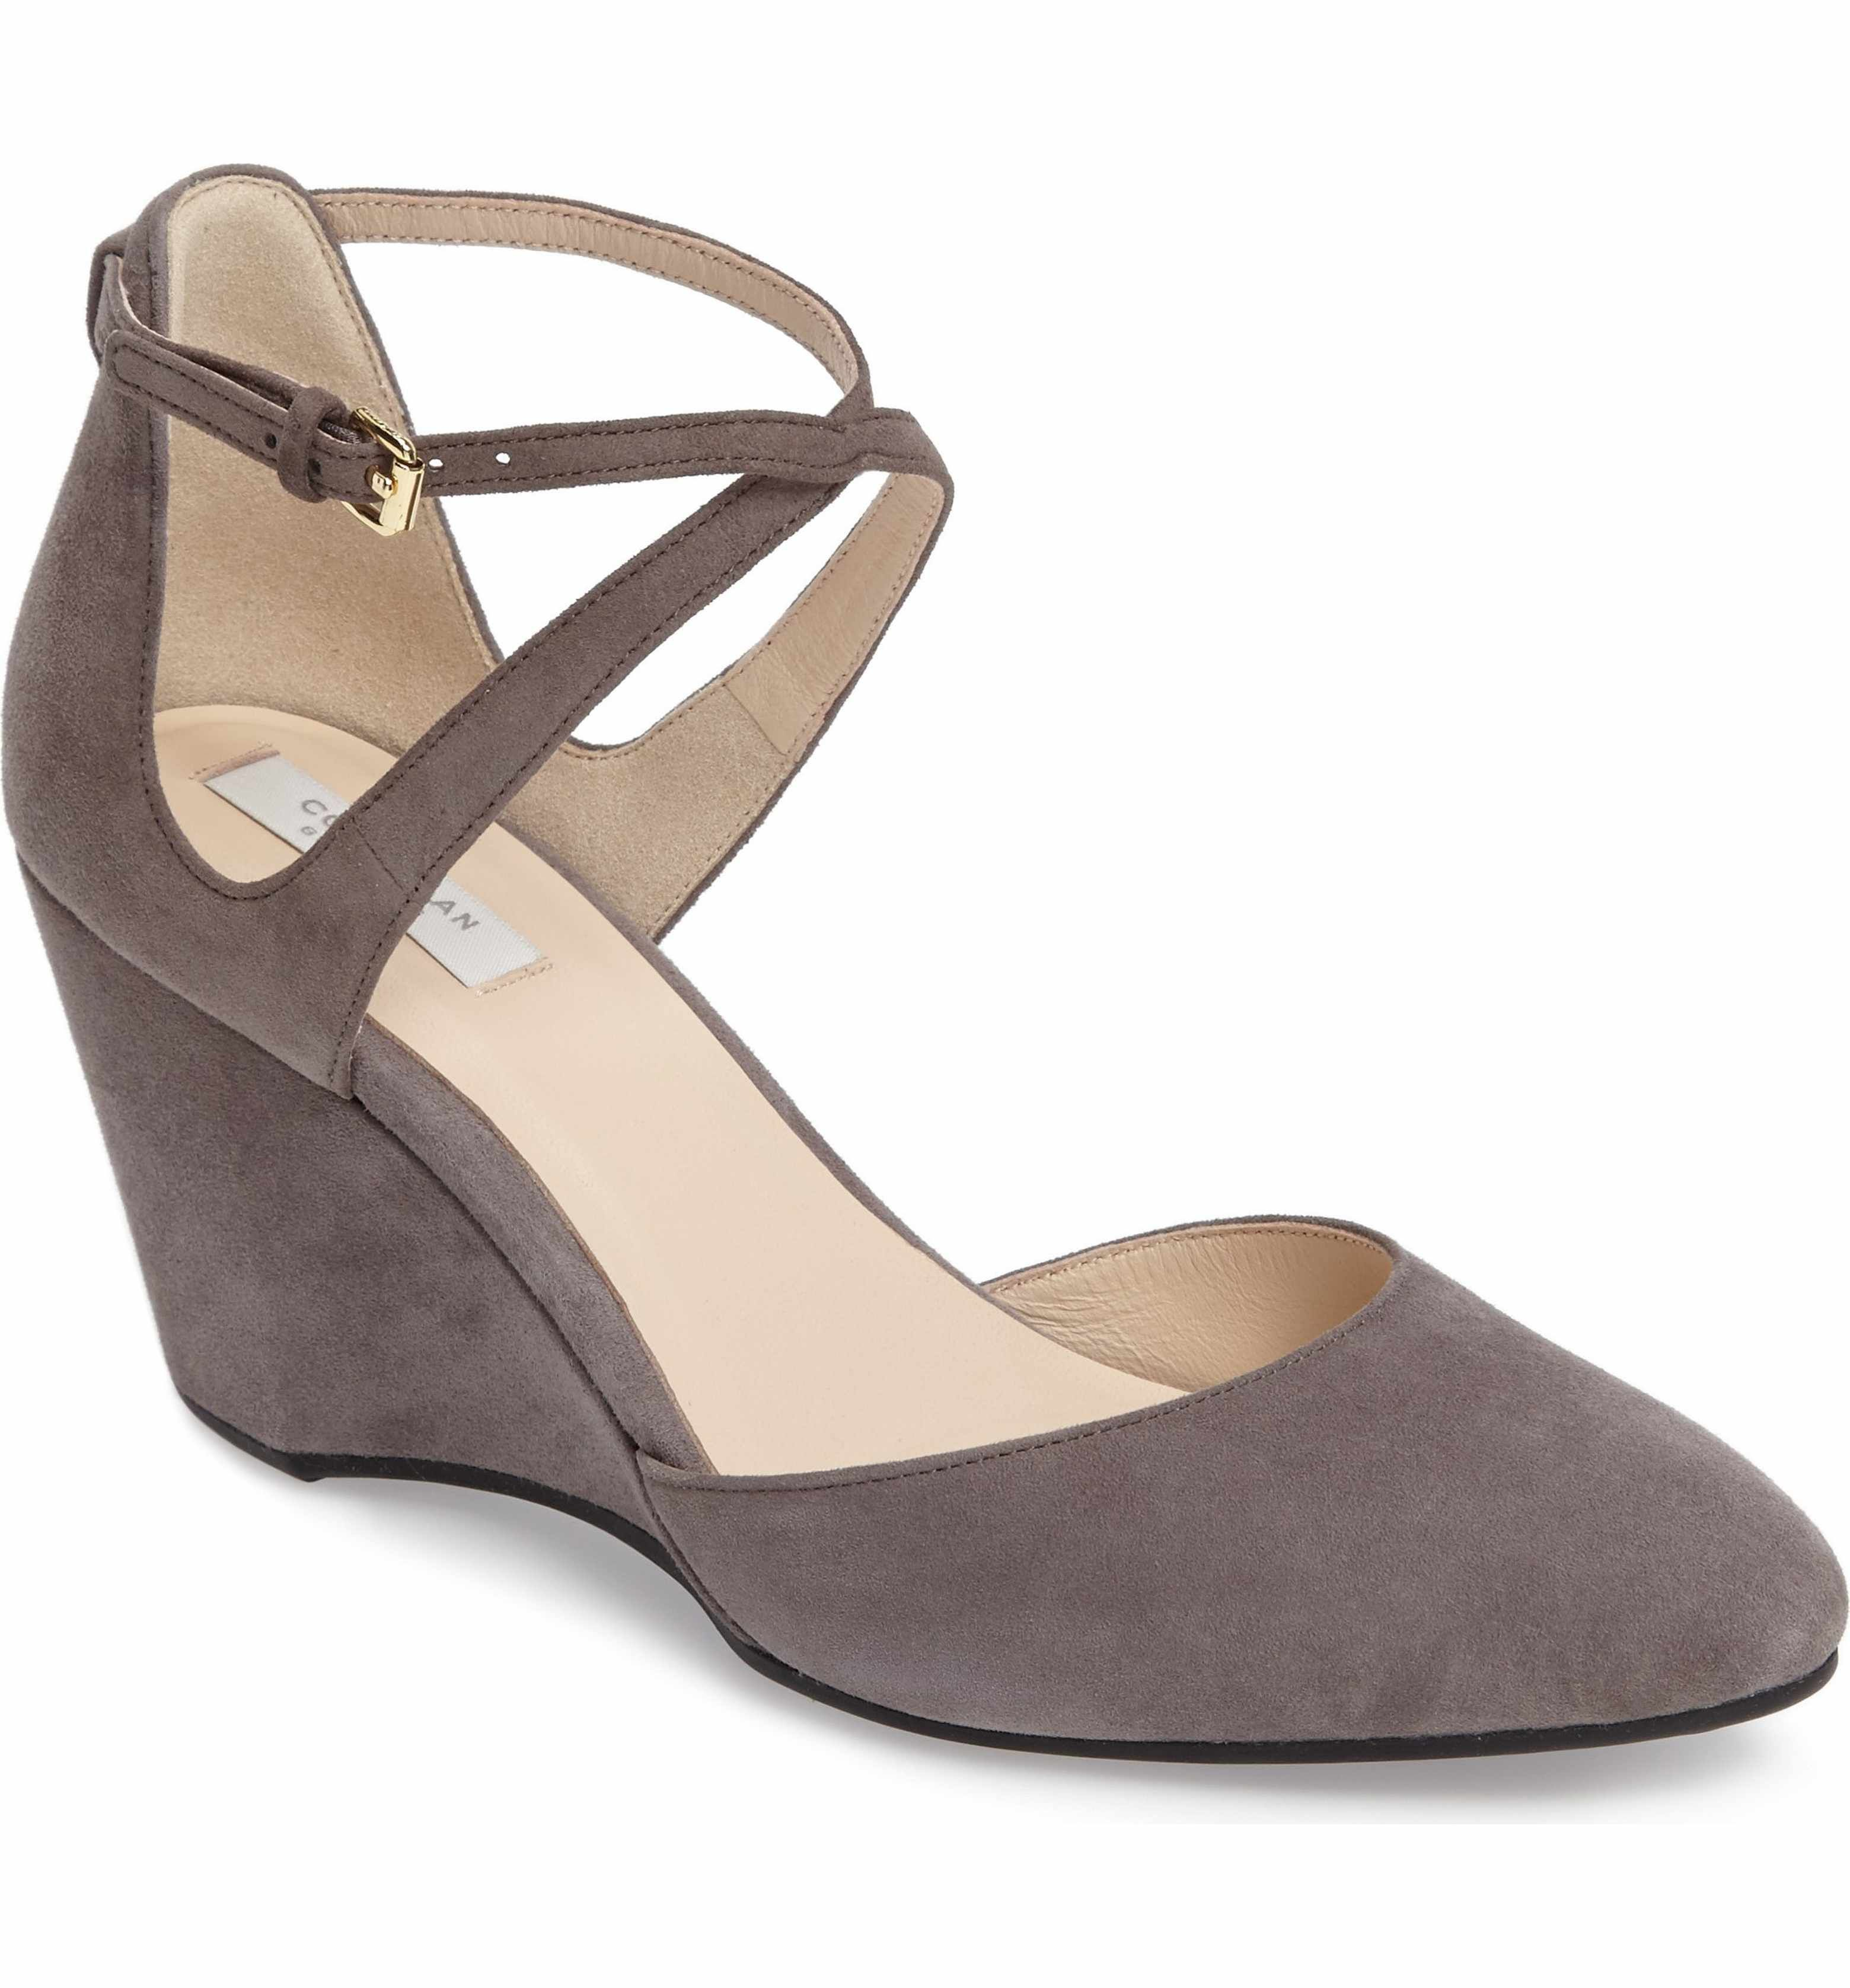 8e00a0f03d7d Main Image - Cole Haan Lacey Ankle Strap Wedge Pump (Women) | Fall ...